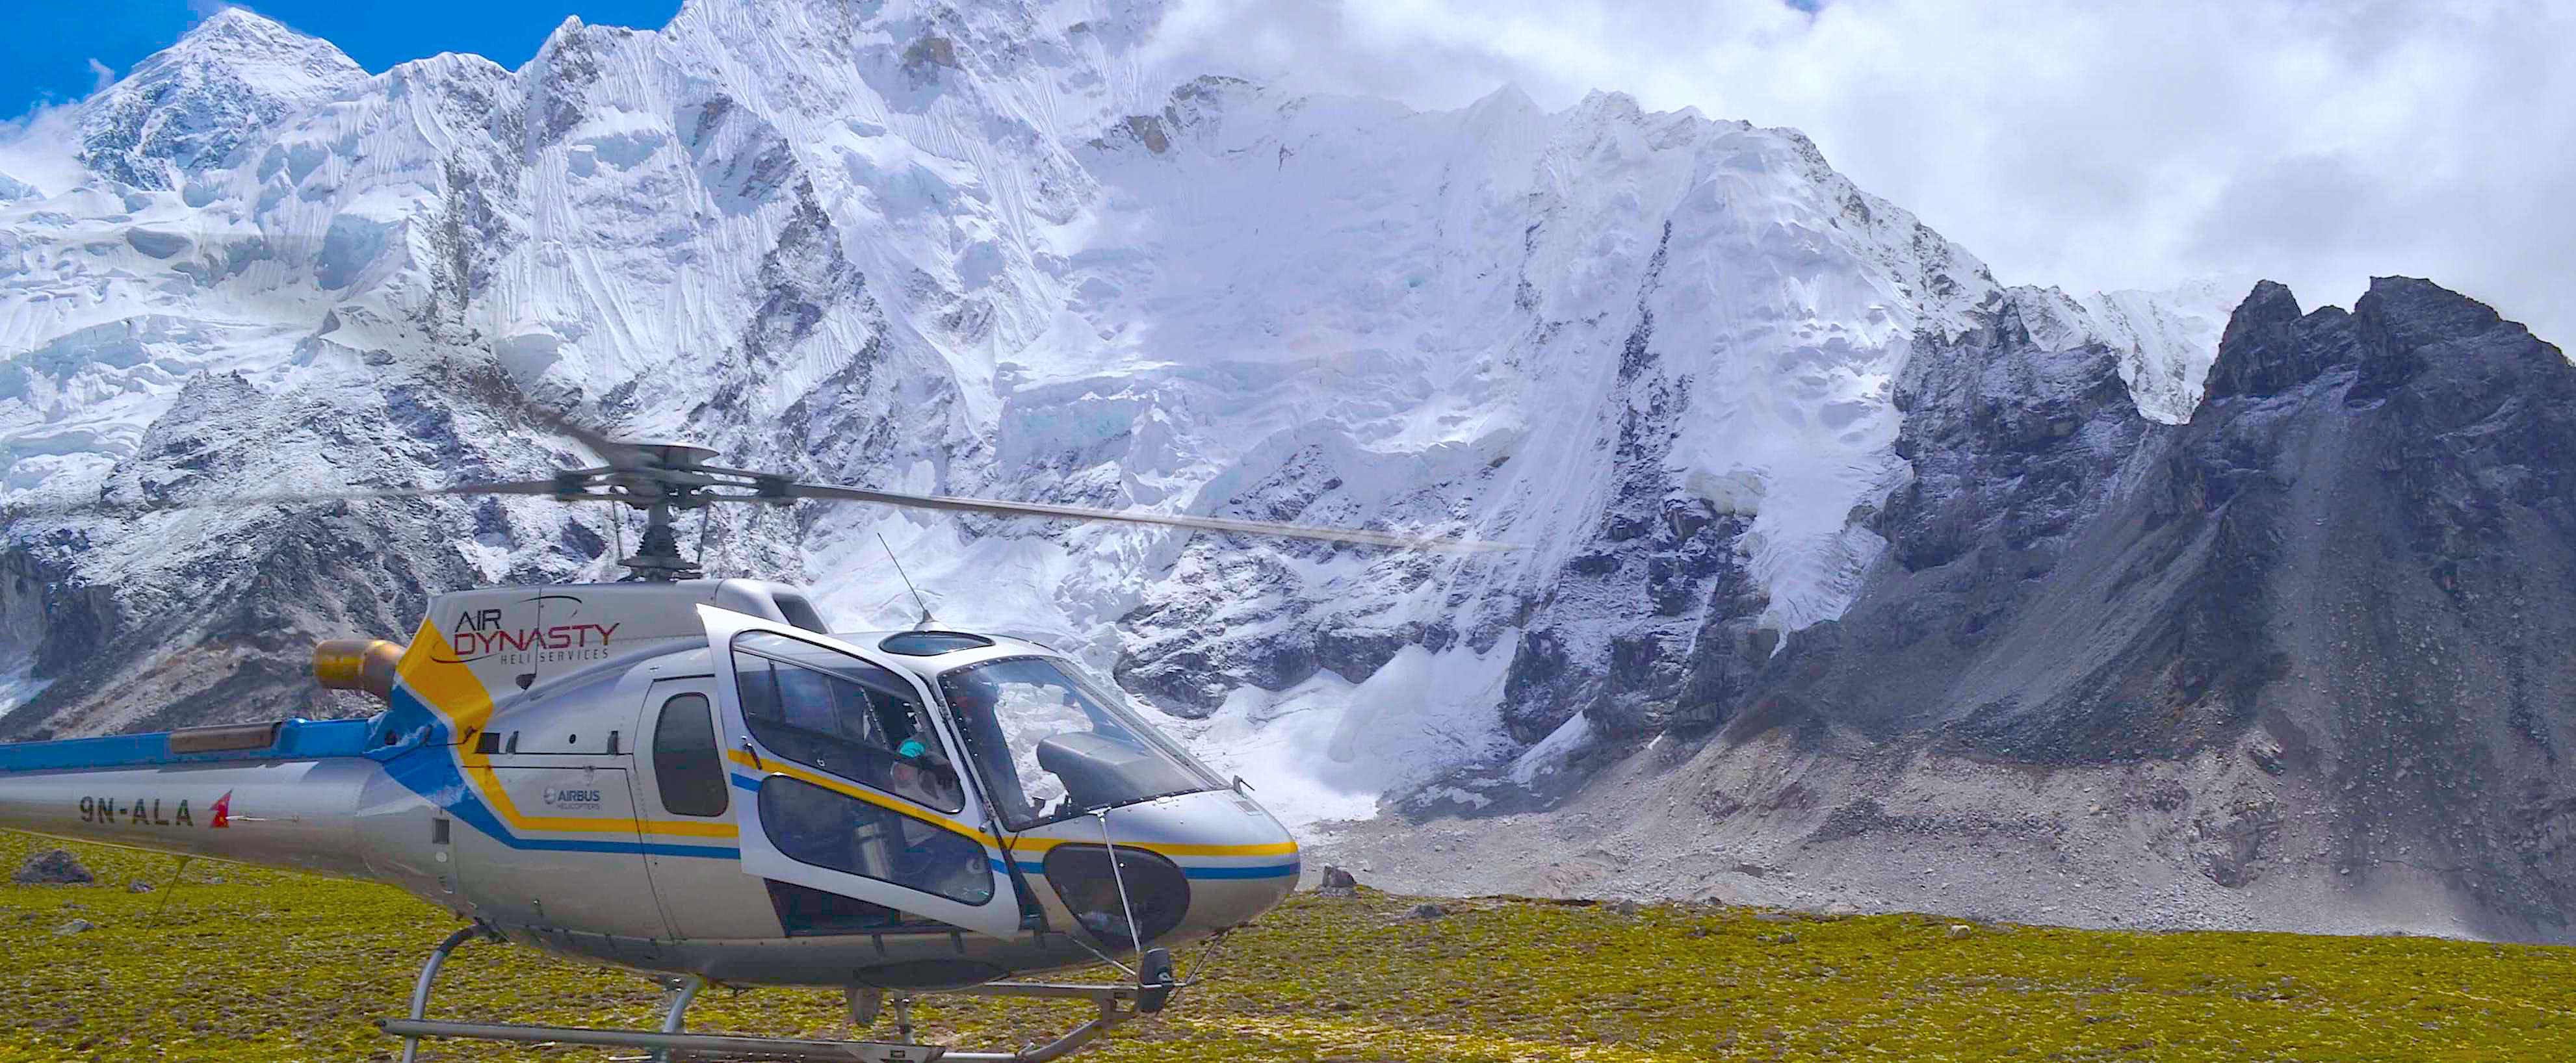 Everest Base Camp Helicoptrer tour